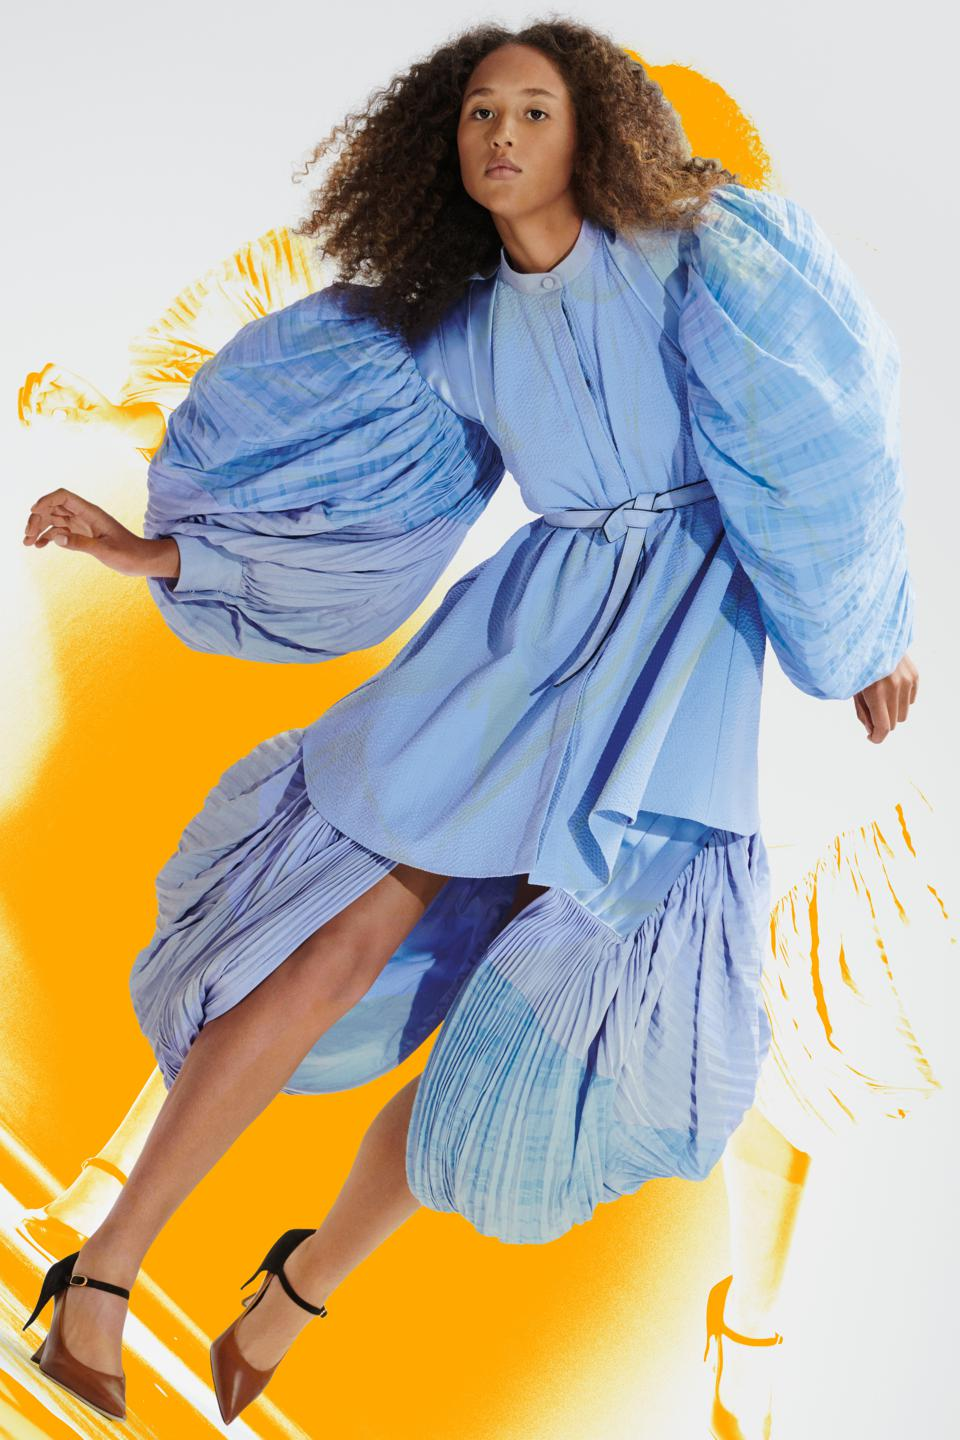 LOEWE Women's Dress from the Spring Summer 2021 Collection with Balloon Sleeves